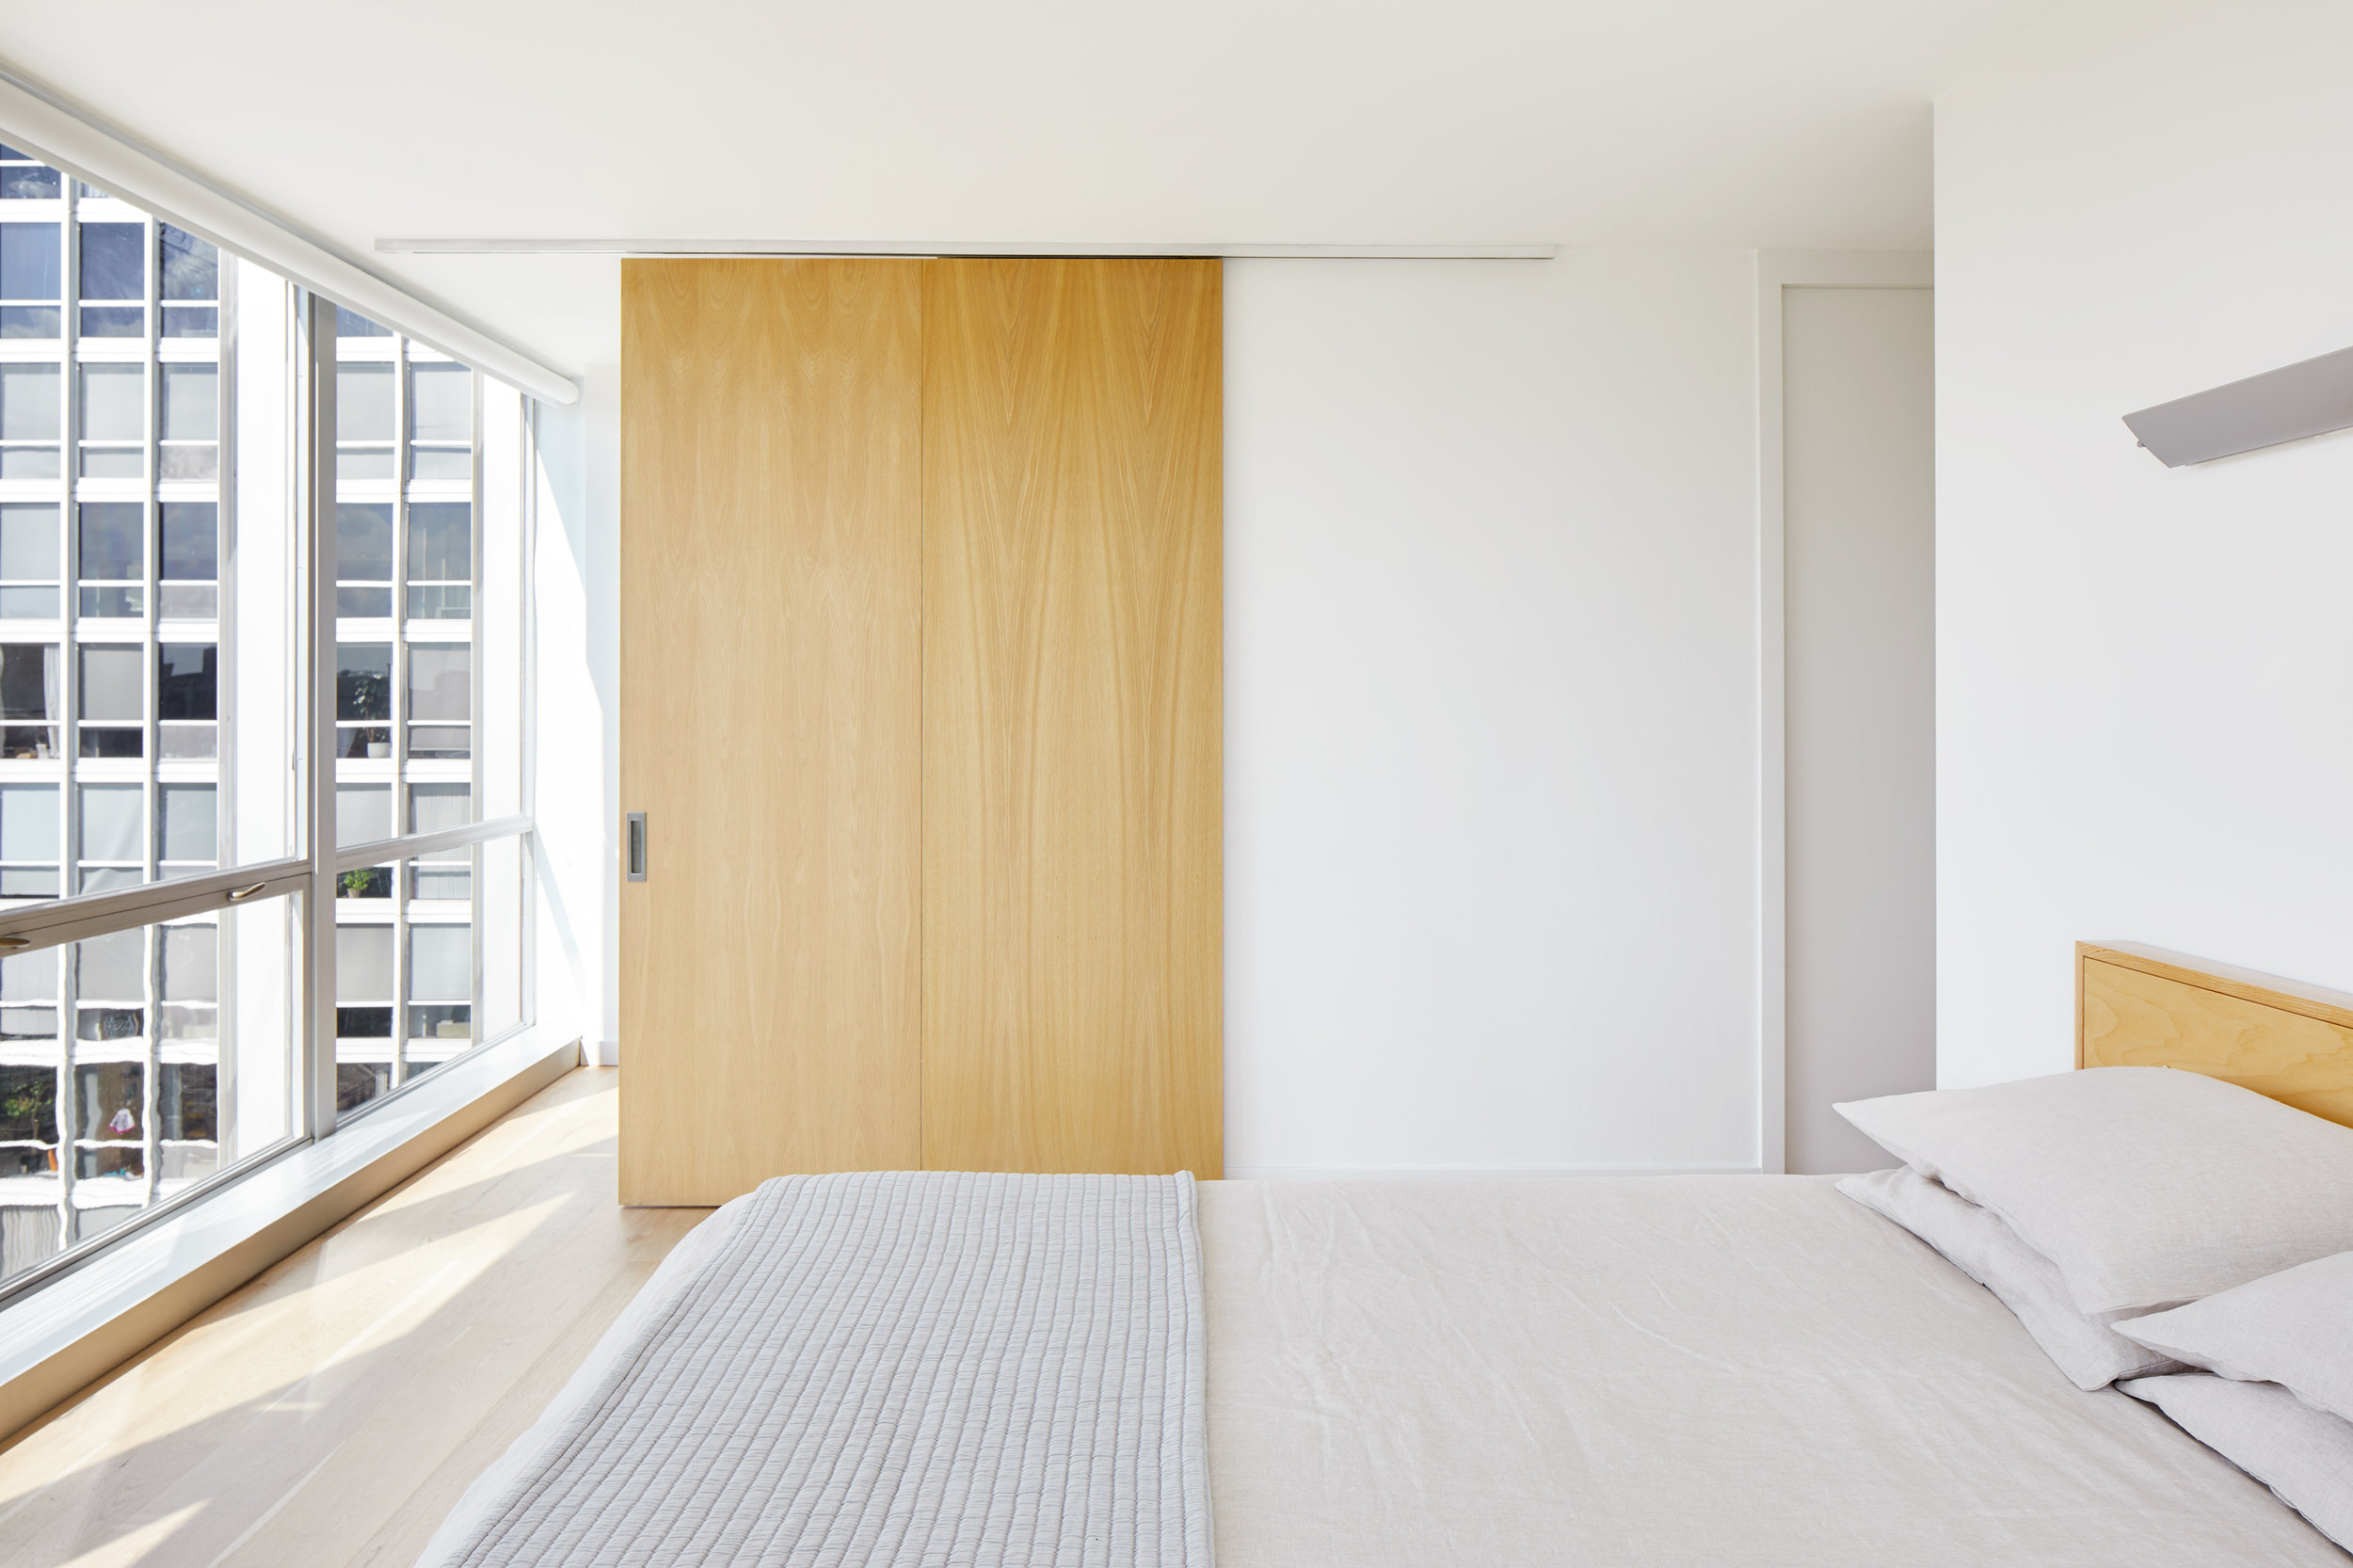 White / Oak Bedroom - Apartment Renovation, Chicago